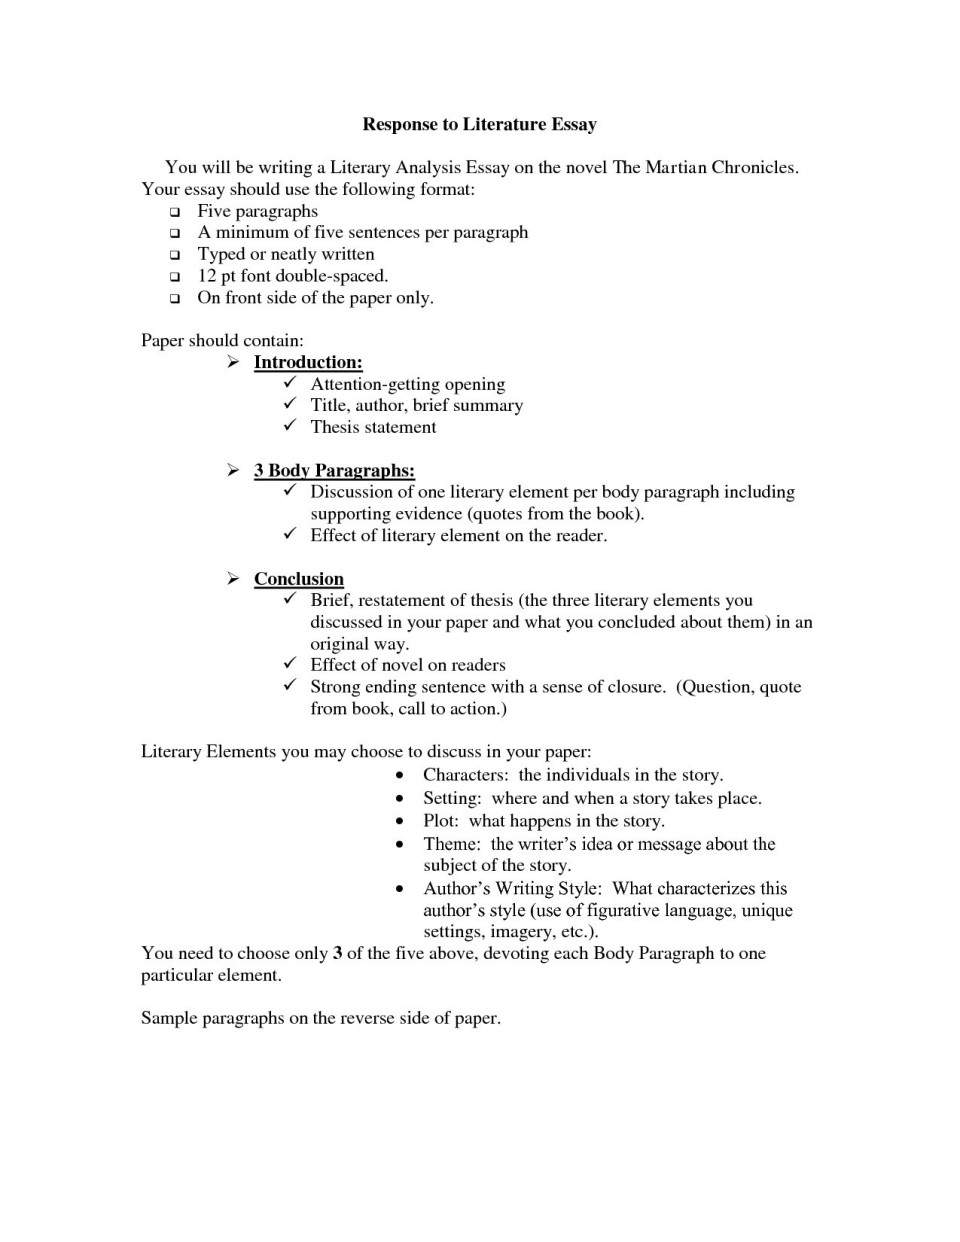 006 Essay Example Brilliant Ideas Of Resume Cv Cover Letter Poetry Reflection Paper Poem Parison Creative Explication Formidable Trifles Questions Feminism Topics 960